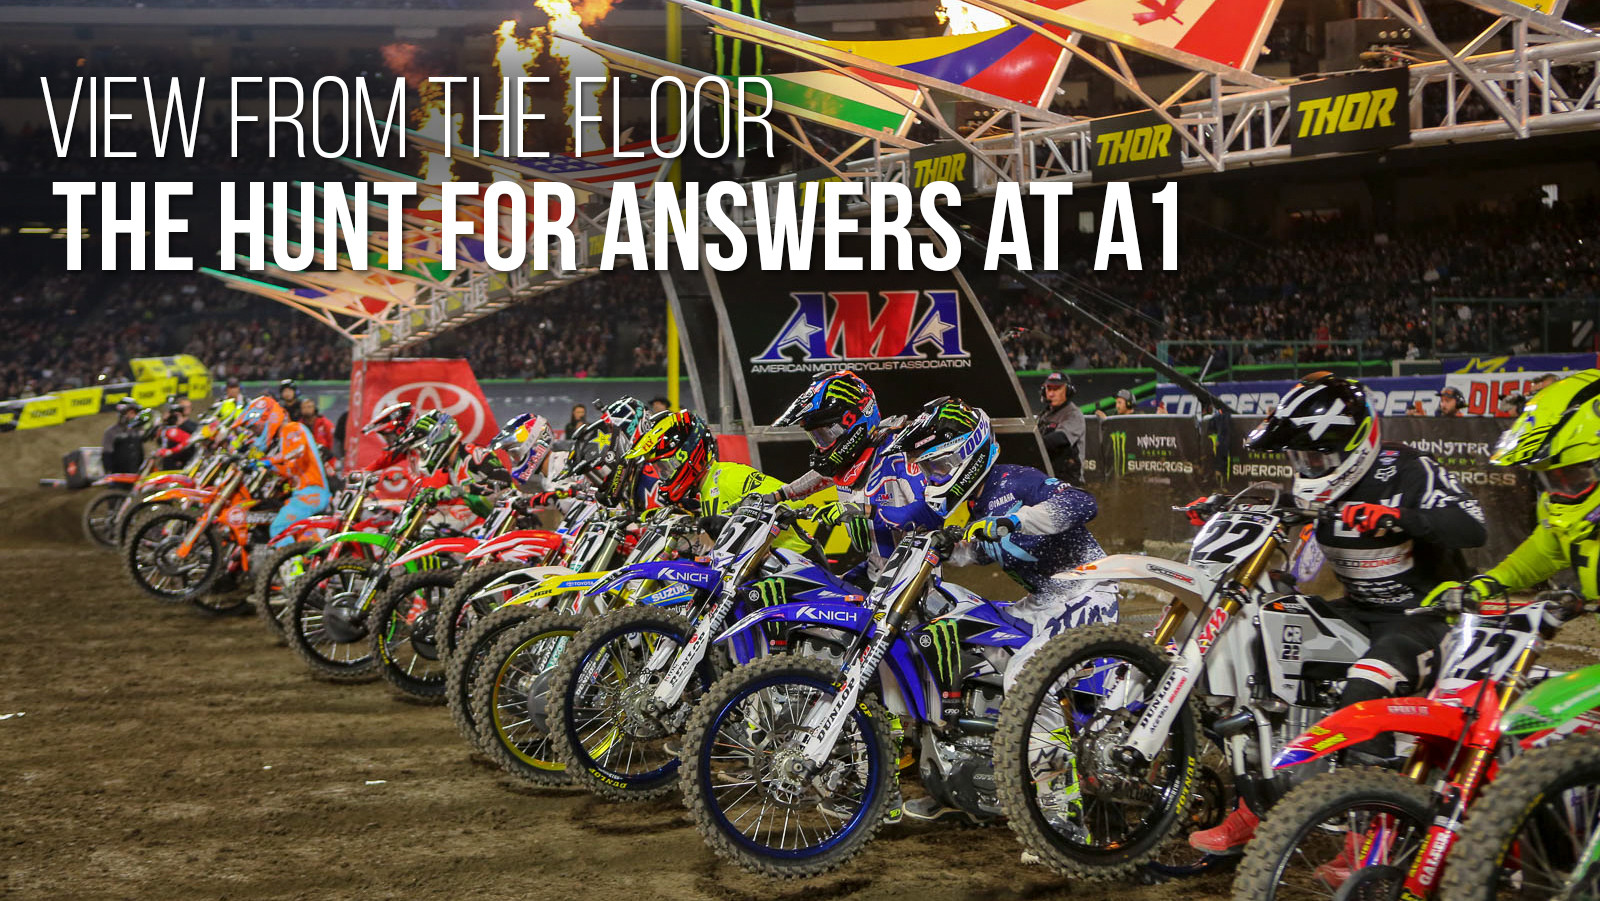 View From the Floor: The Hunt For Answers At A1